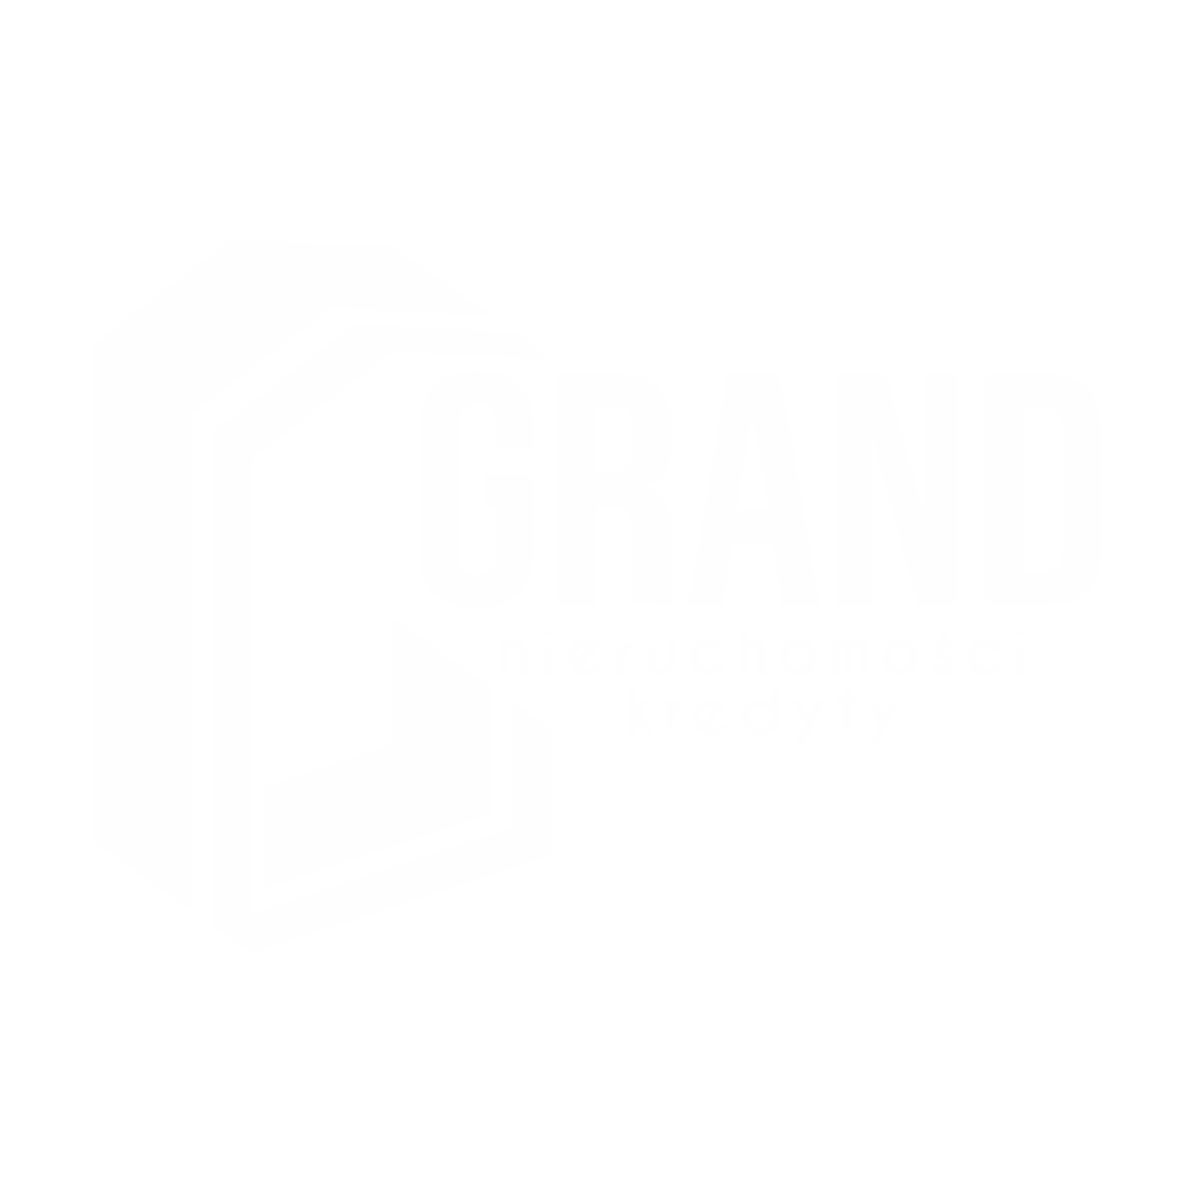 grand.png